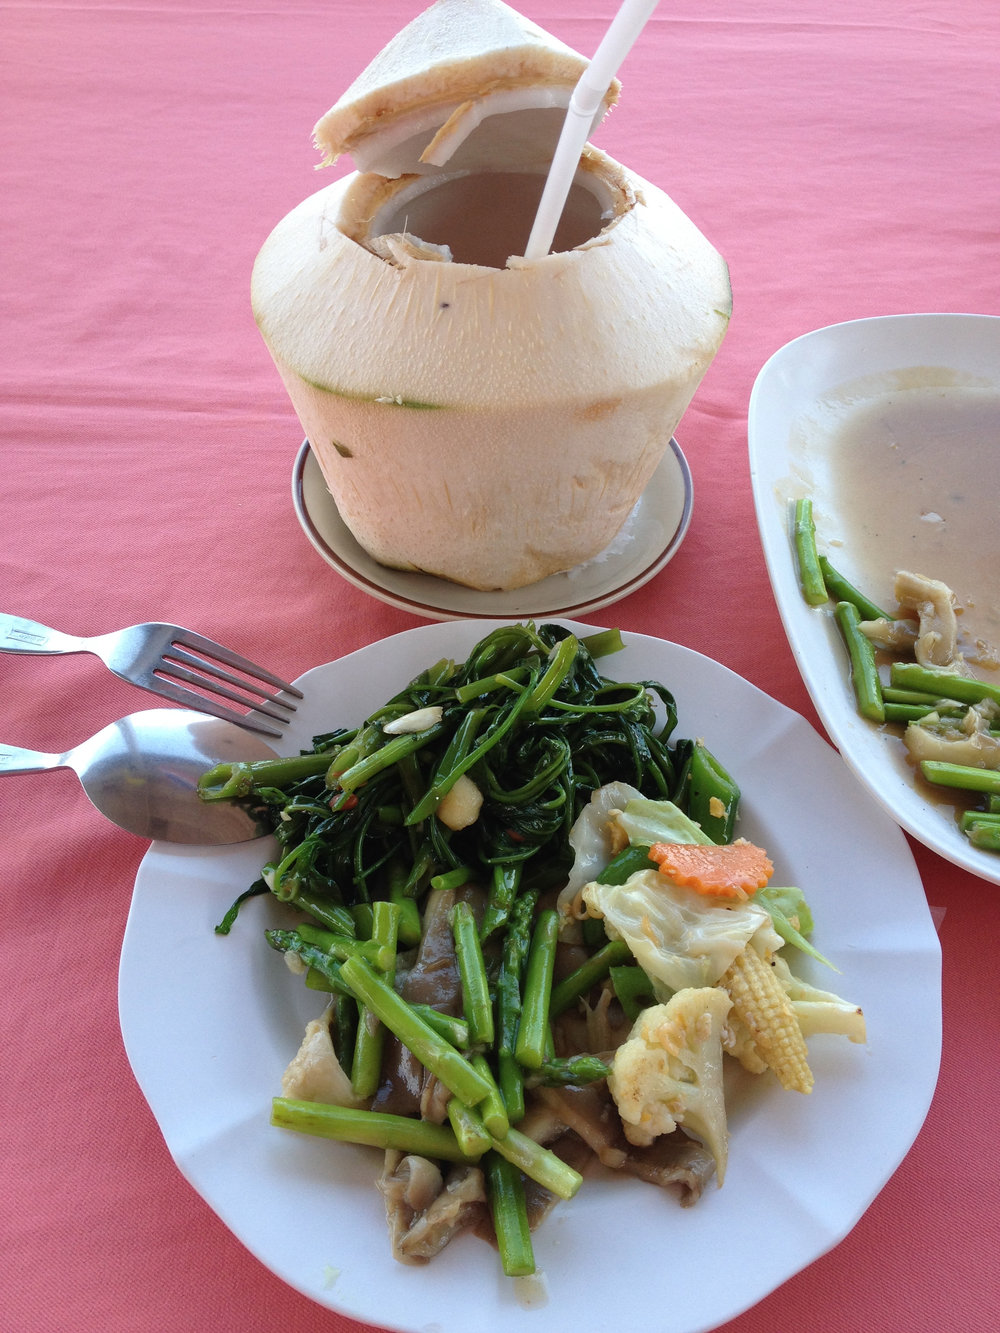 This was a lunch I had - full of greens, sauteed veggies and mushrooms. Because it was hot in Hua Hin, the fresh coconut water quenched my thirst, as well as providing me with nutrients and electrolytes (mother nature's energy drink)!